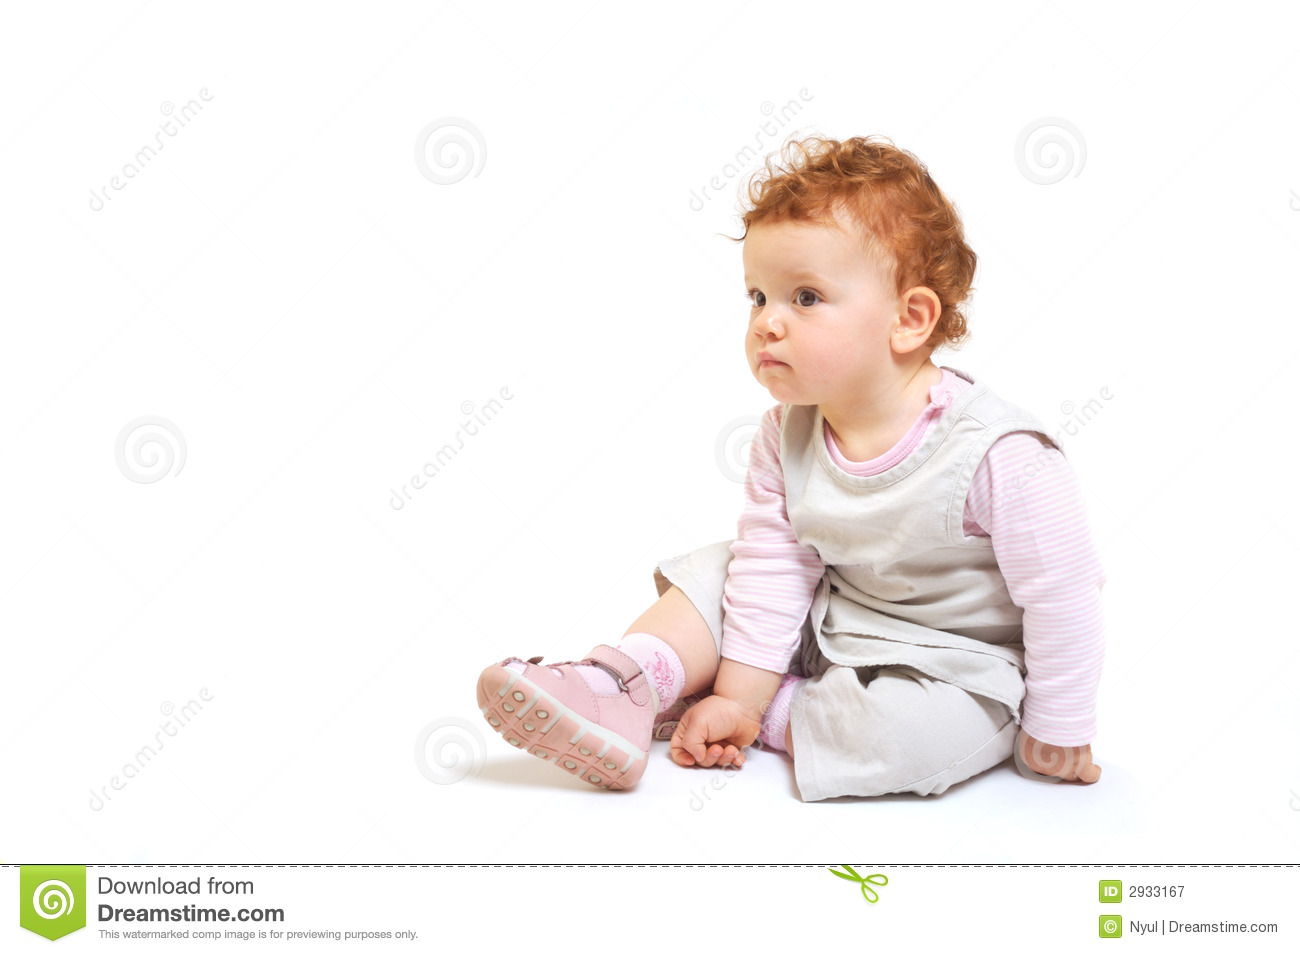 Redhead Baby Sitting Royalty Free Stock Photography - Image: 2933167